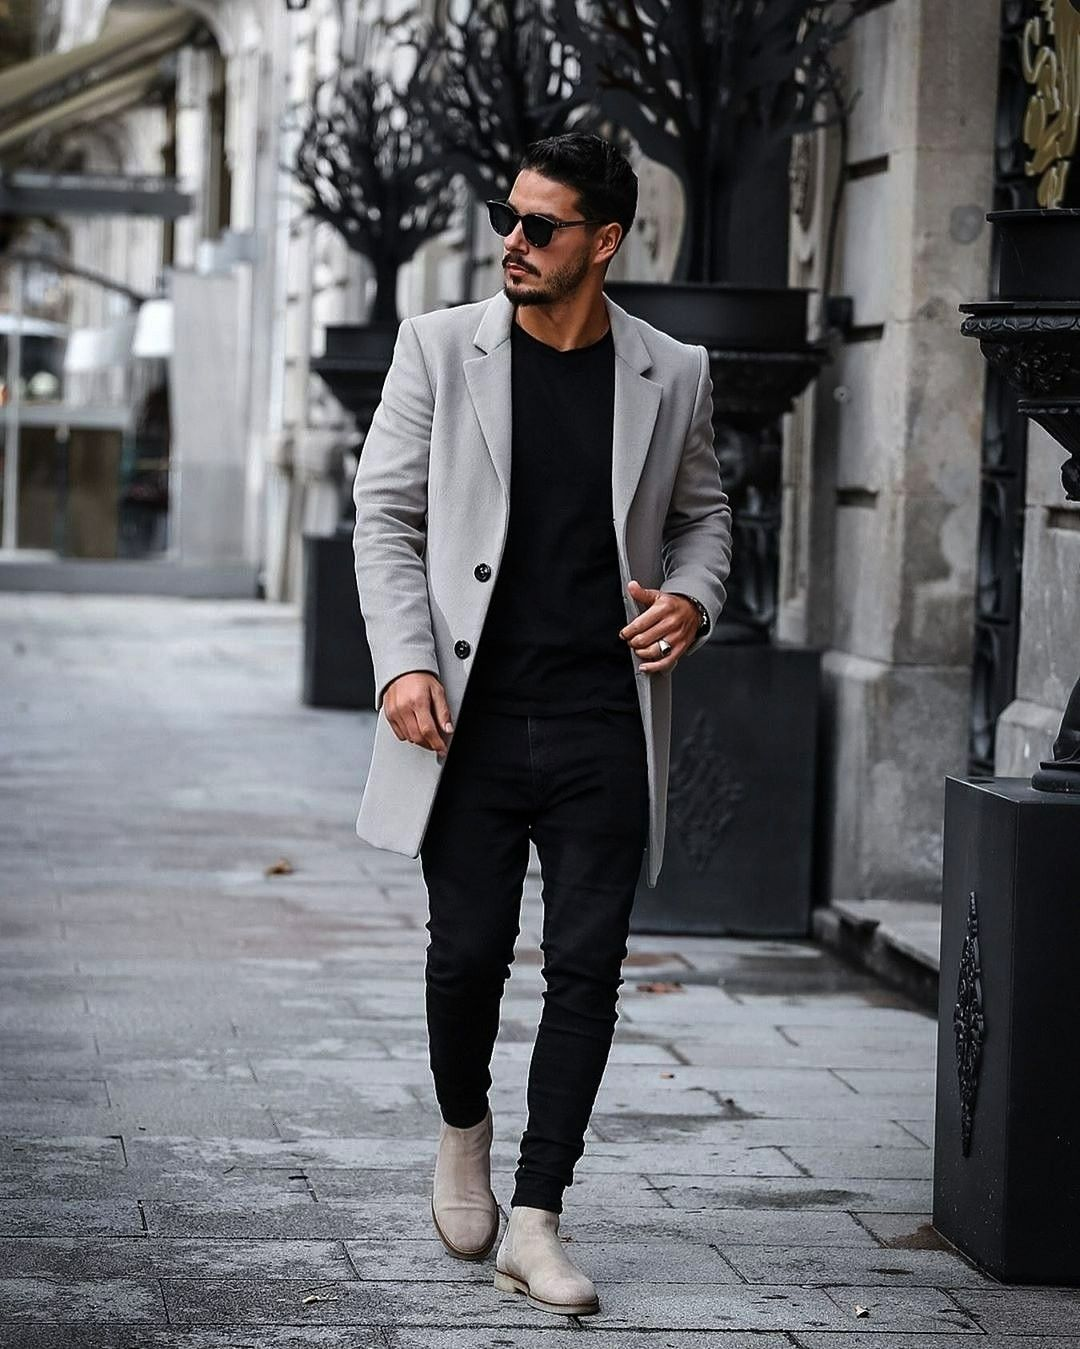 and Stylish Look! We Bring You The Best Simple, Stylish and Fashionable Outfit Ideas For Men That E